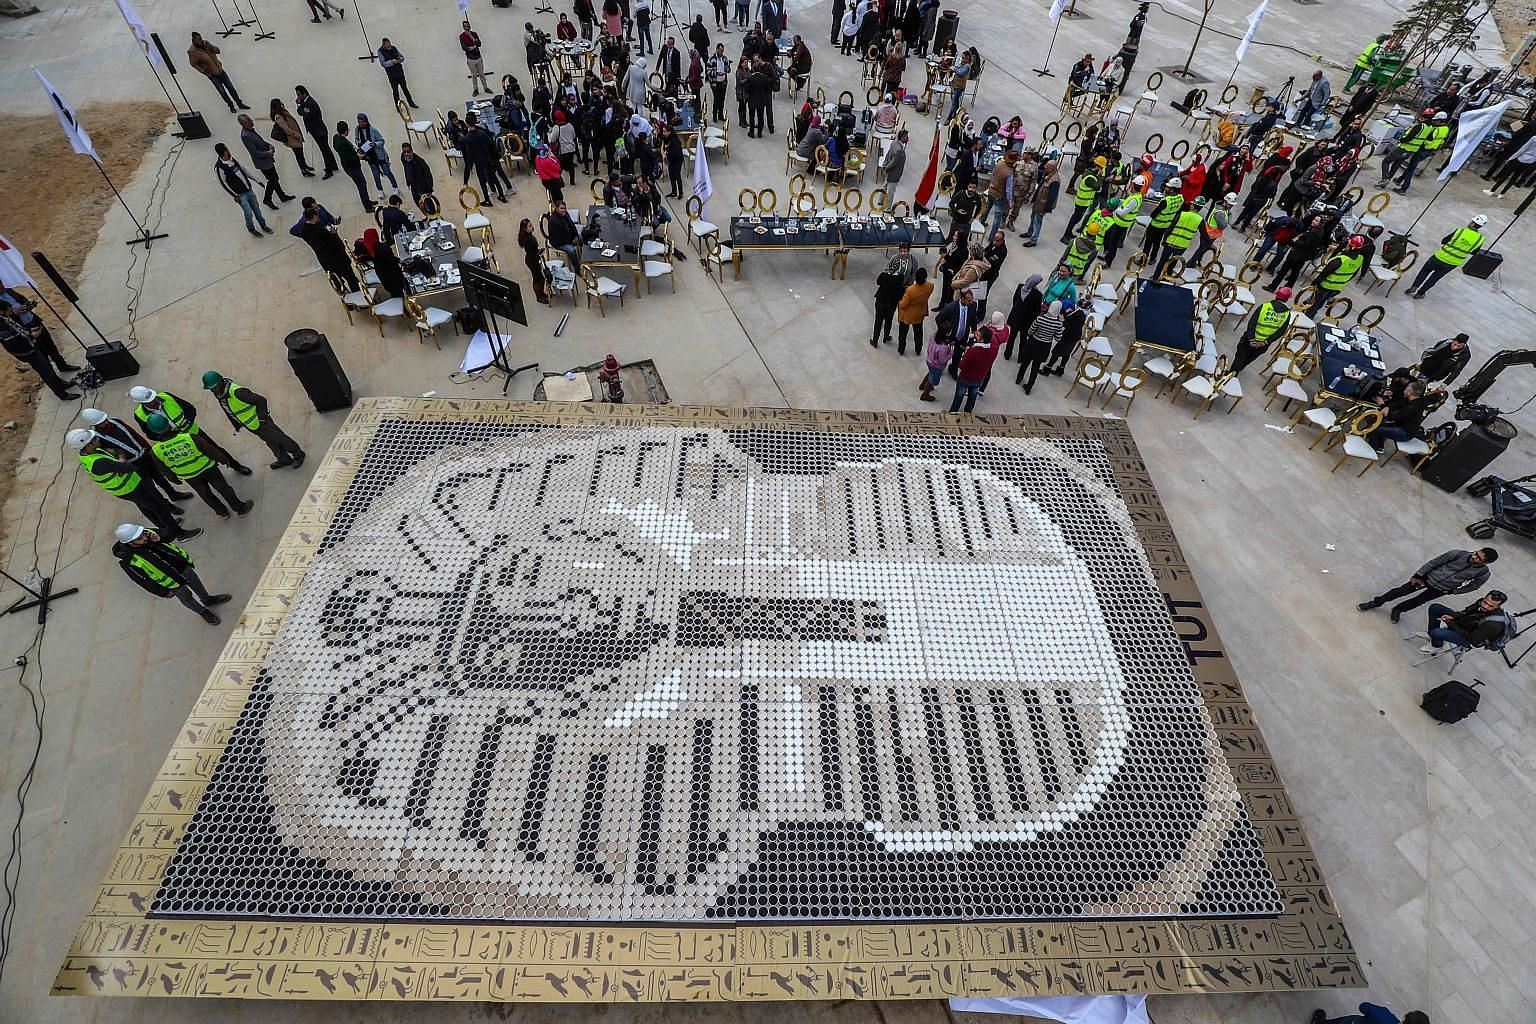 People gathering around a mosaic of Egyptian Pharaoh Tutankhamun's death mask made of 7,260 cups of coffee on Saturday. The mosaic, in front of the newly-built Grand Egyptian Museum in Giza, beat the 2012 world record set by a similar mosaic in the U